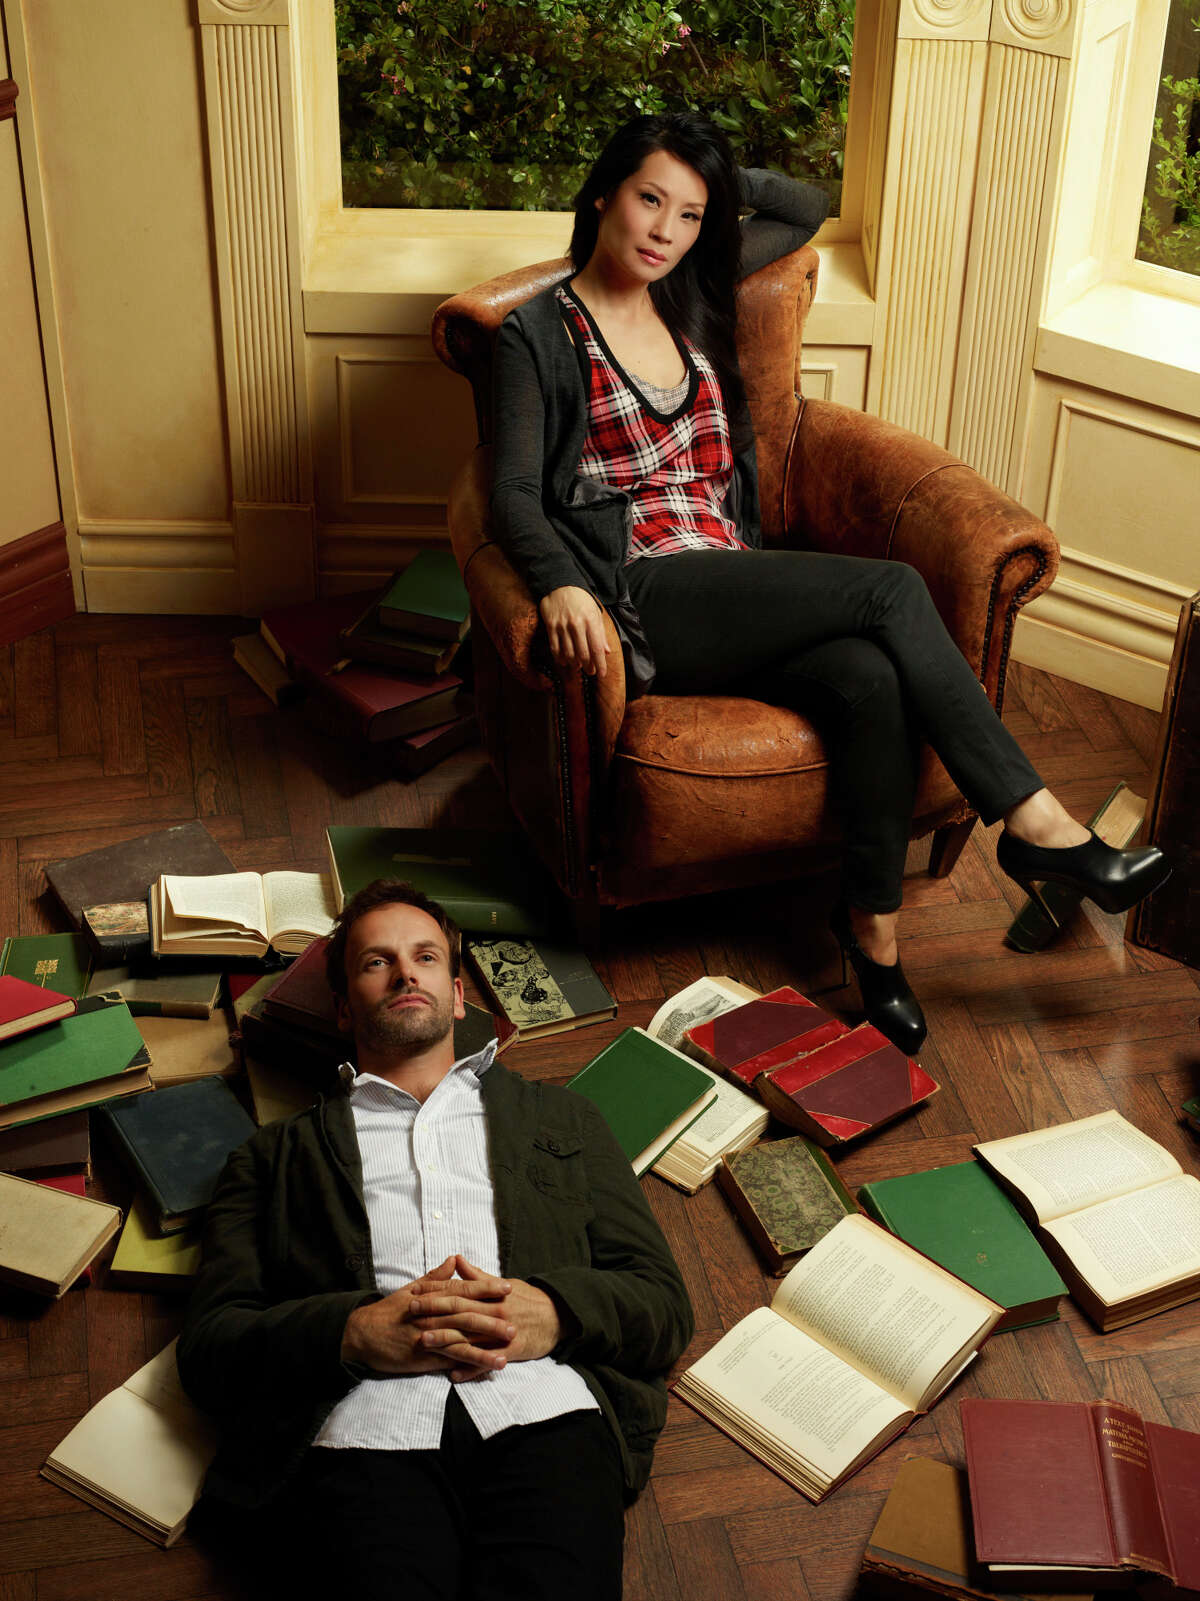 Jonny Lee Miller (left) stars as Sherlock Holmes and Lucy Liu (right) stars as Watson on the new television series ELEMENTARY, premiering Thursdays, 10pm ET/PT this Fall on the CBS Television Network. Photo: Nino Munoz/CBS©2012 CBS Broadcasting Inc. All Rights Reserved.